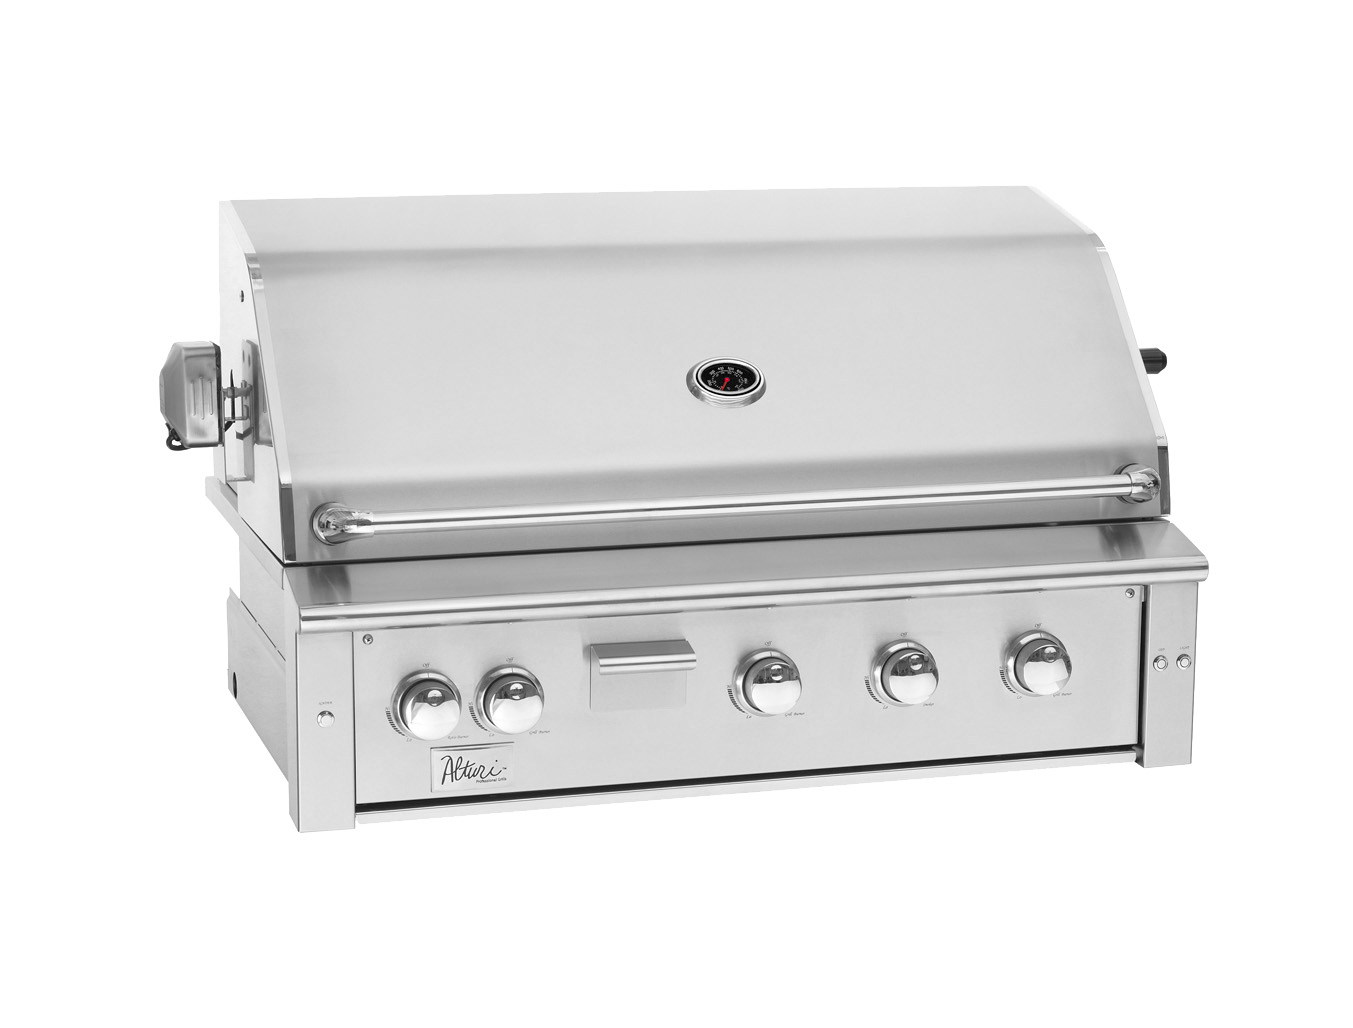 Alturi Lifestyles Barbecue Grills - Nevada Outdoor Living